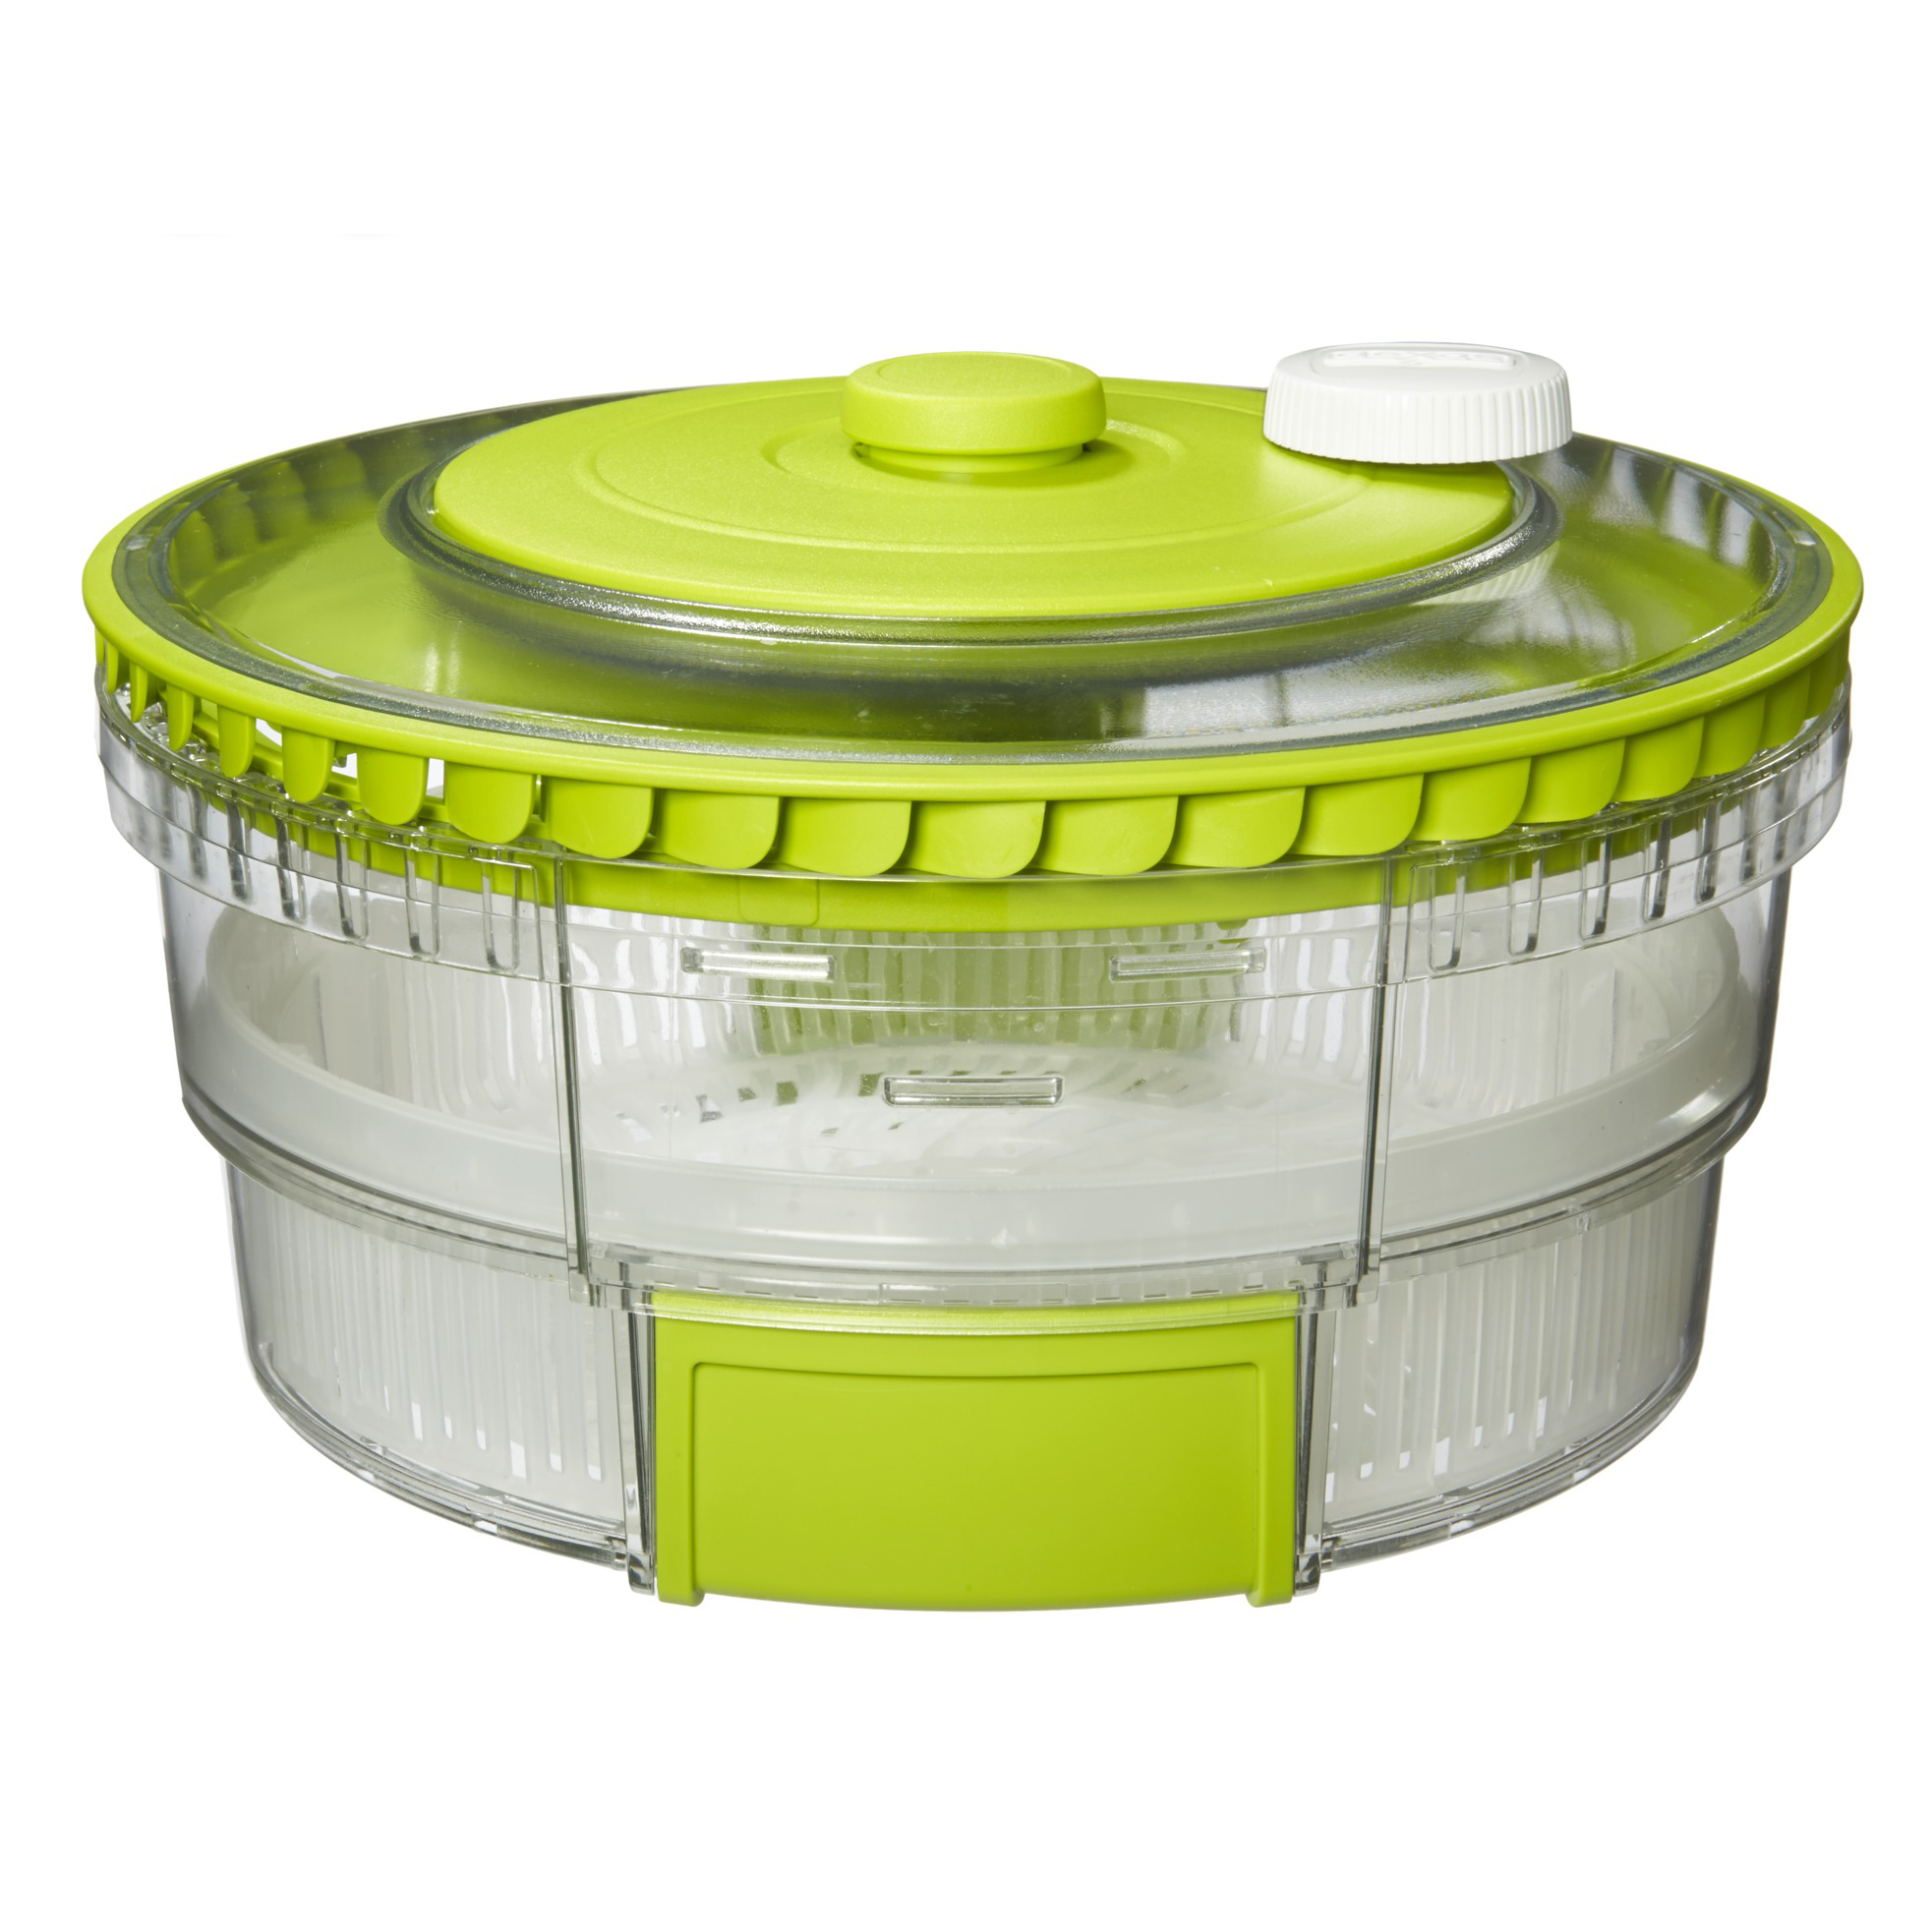 Turbo Fan Collapsible Salad Spinner